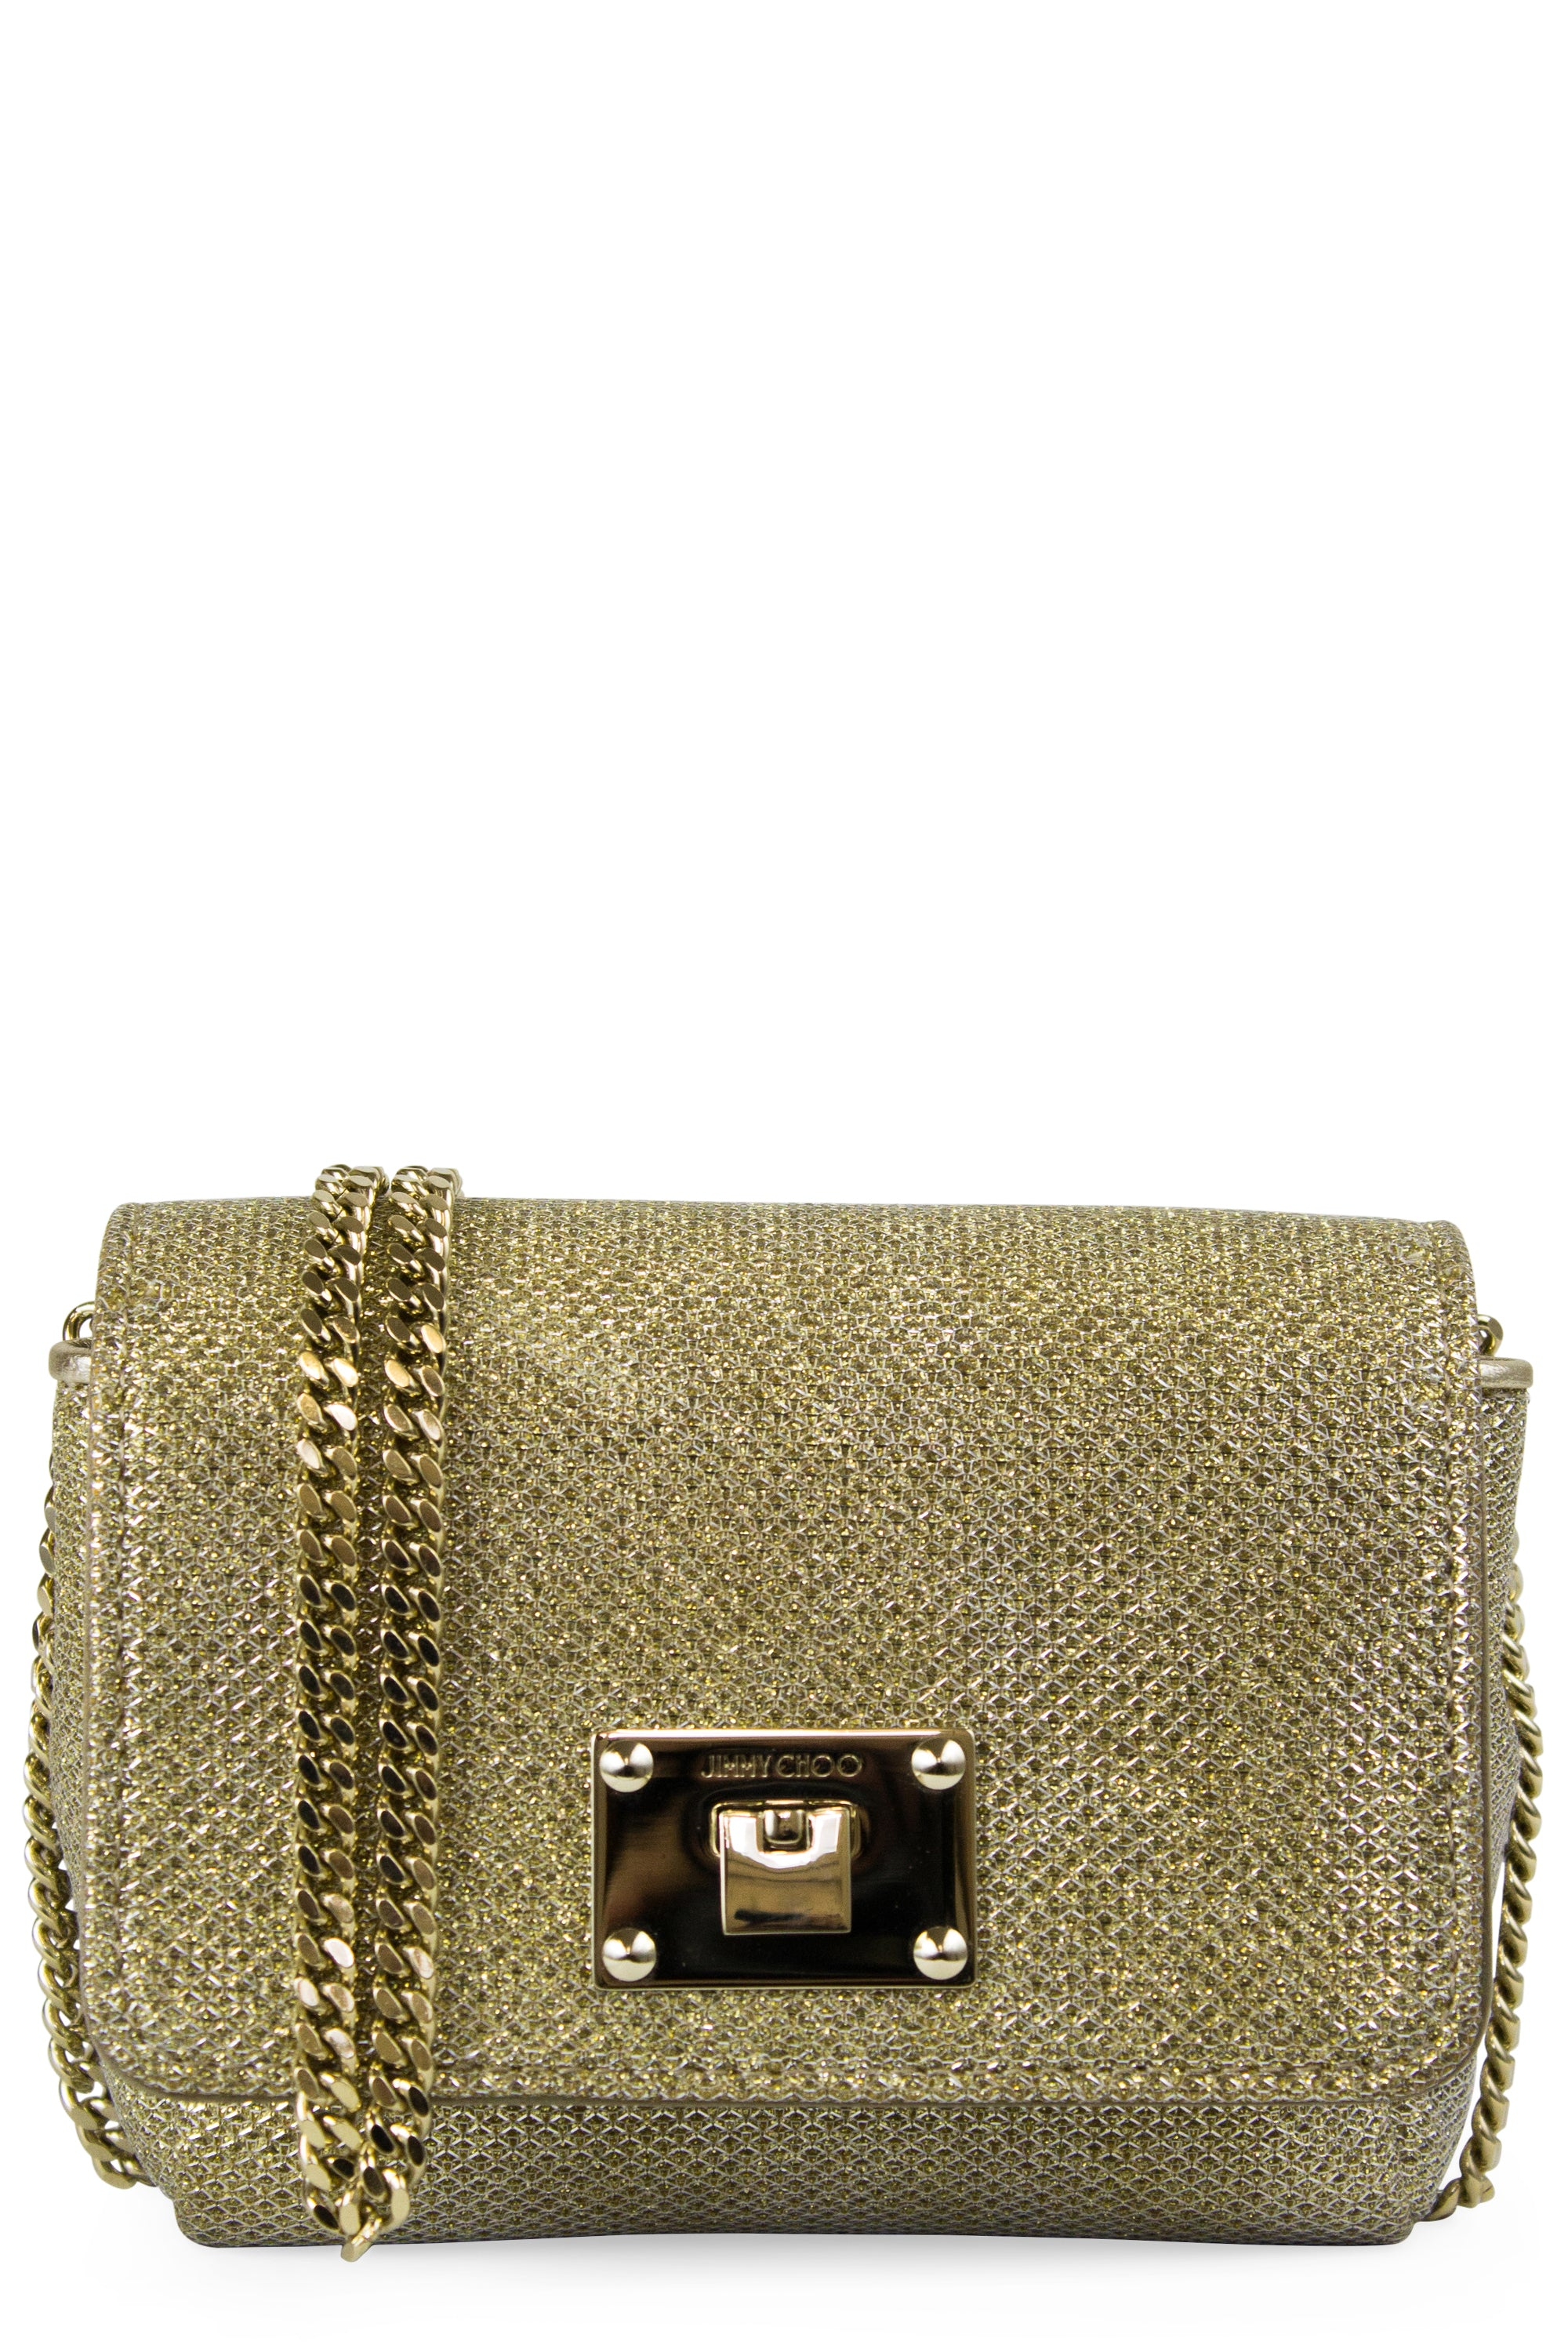 JIMMY CHOO Metallic Mini Ruby Lamé Glitter Crossbody Bag